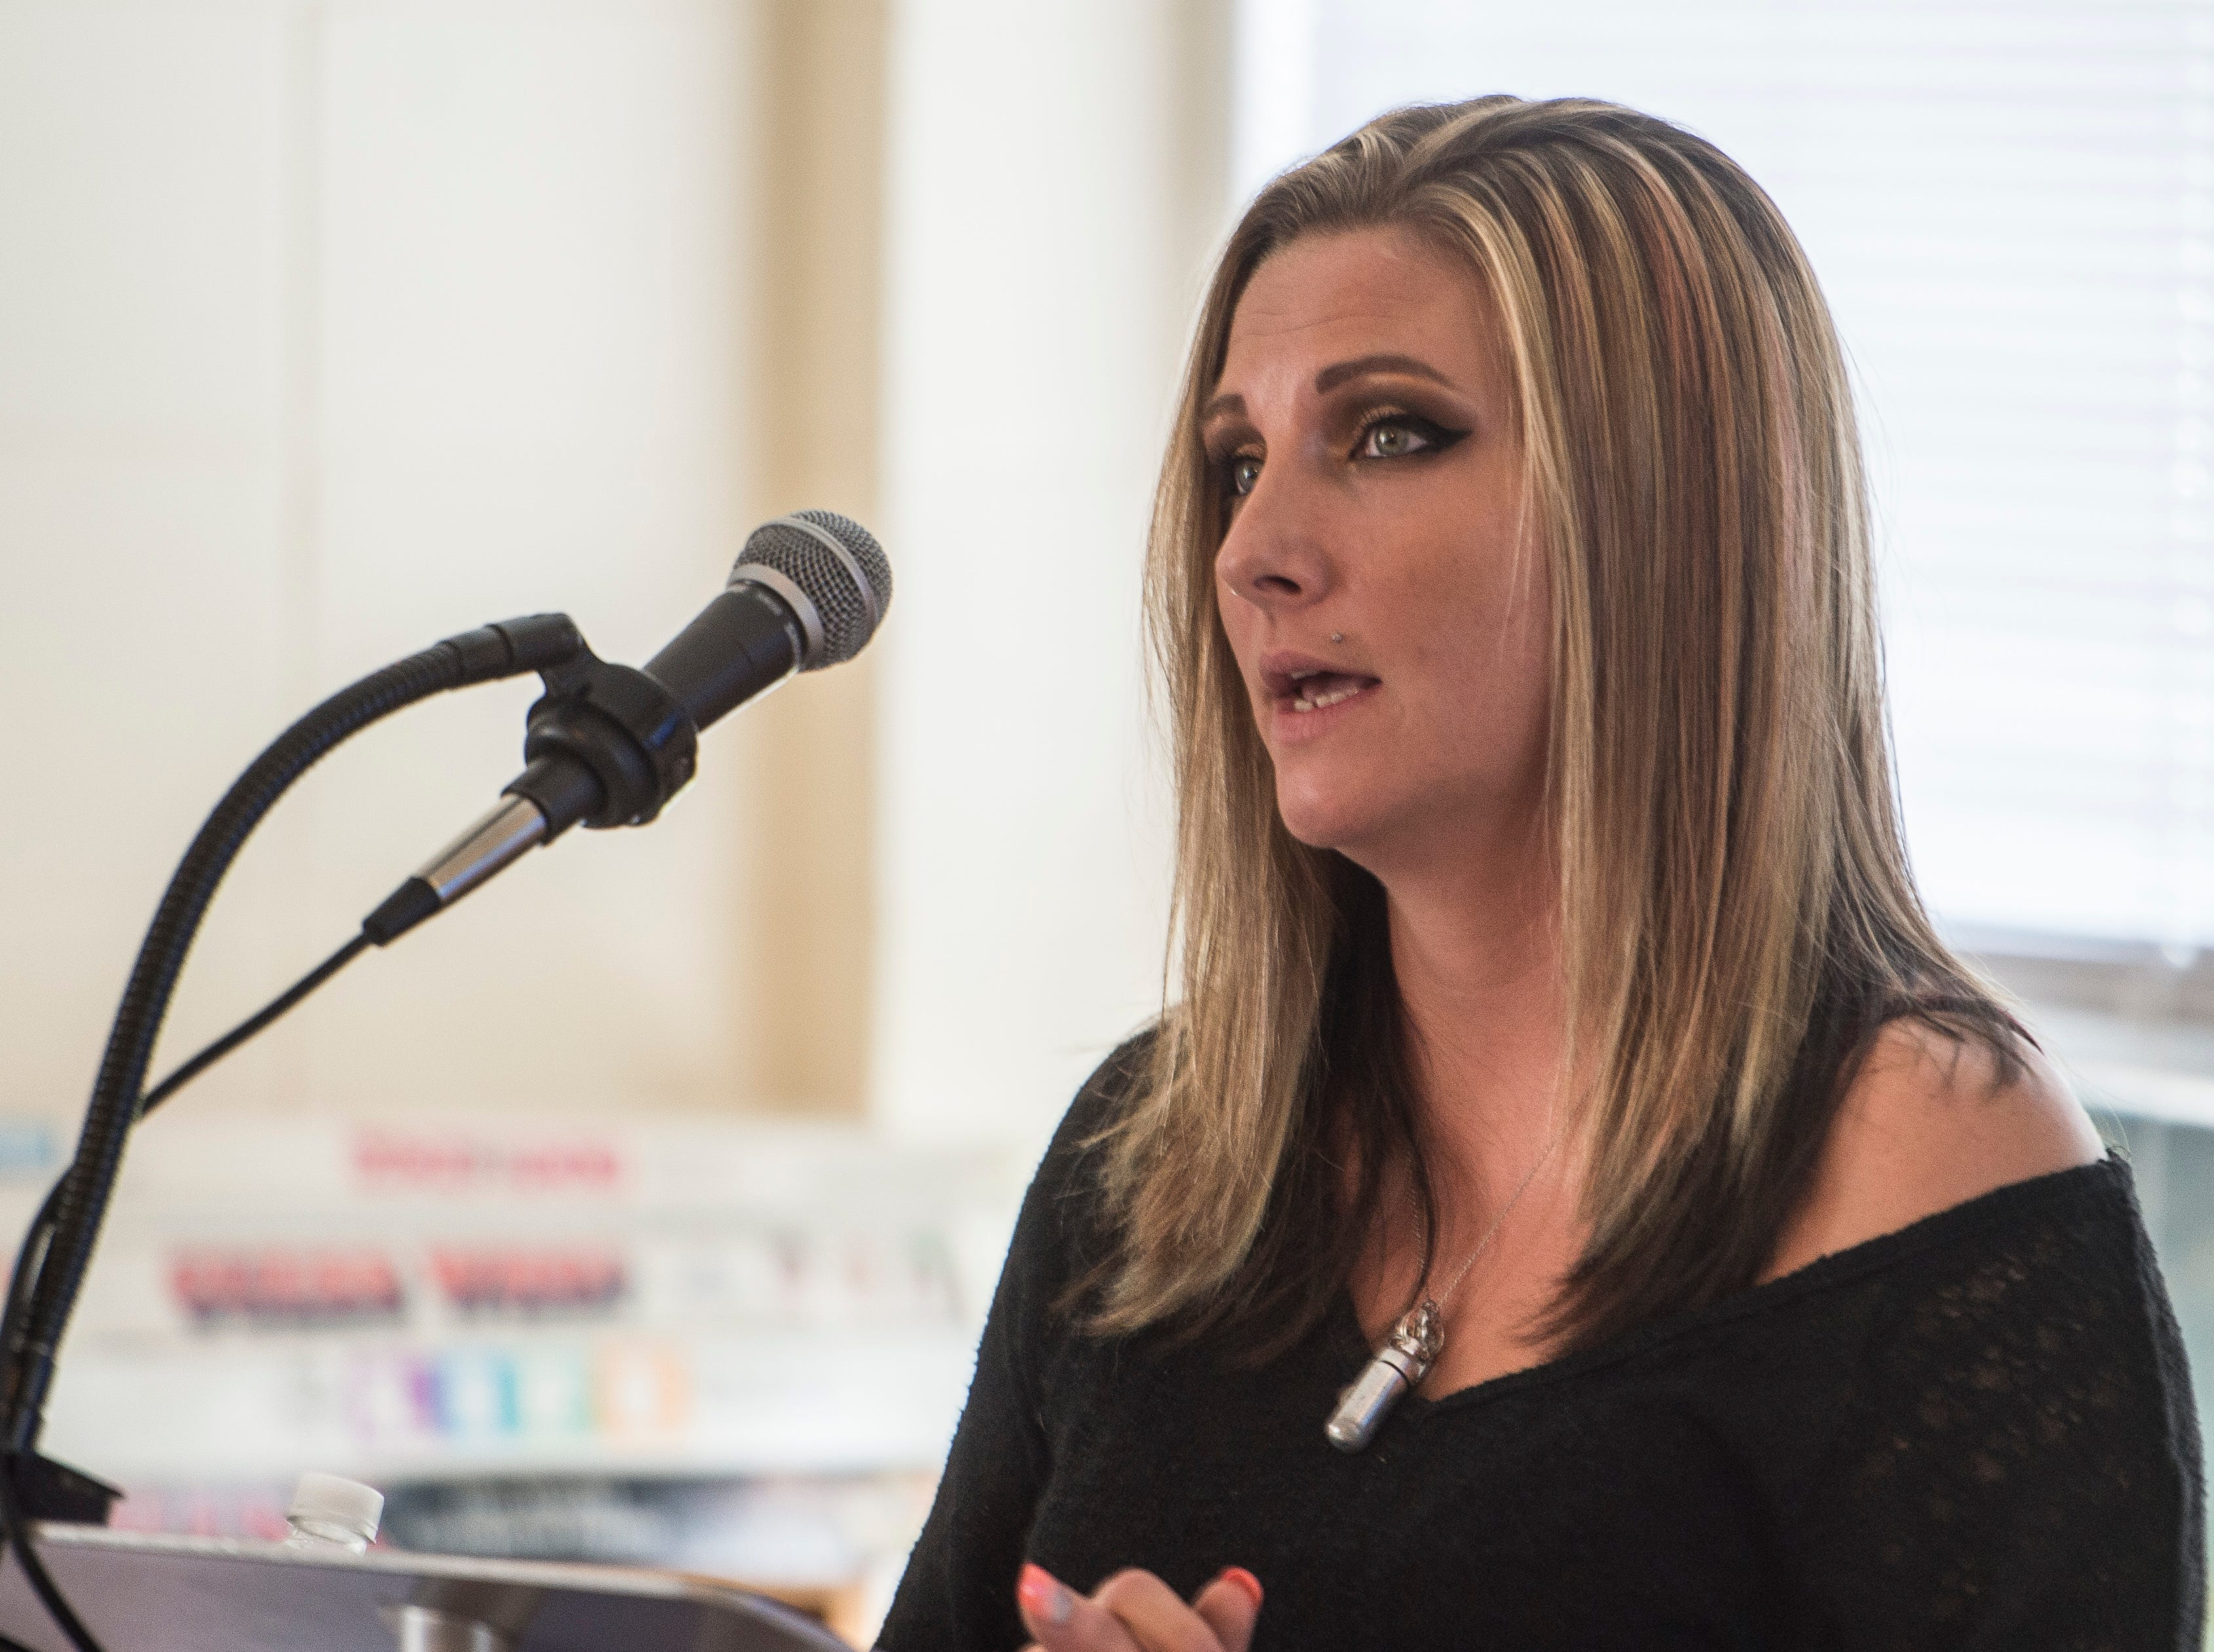 Laura Bratton, a graduate of the Fresh Start Recovery Center in Indianapolis, speaks during a news conference celebrating the opening of the Winchester House, a new drug treatment facility for women, in Winchester, Ind., on Wednesday, Aug. 1, 2018.